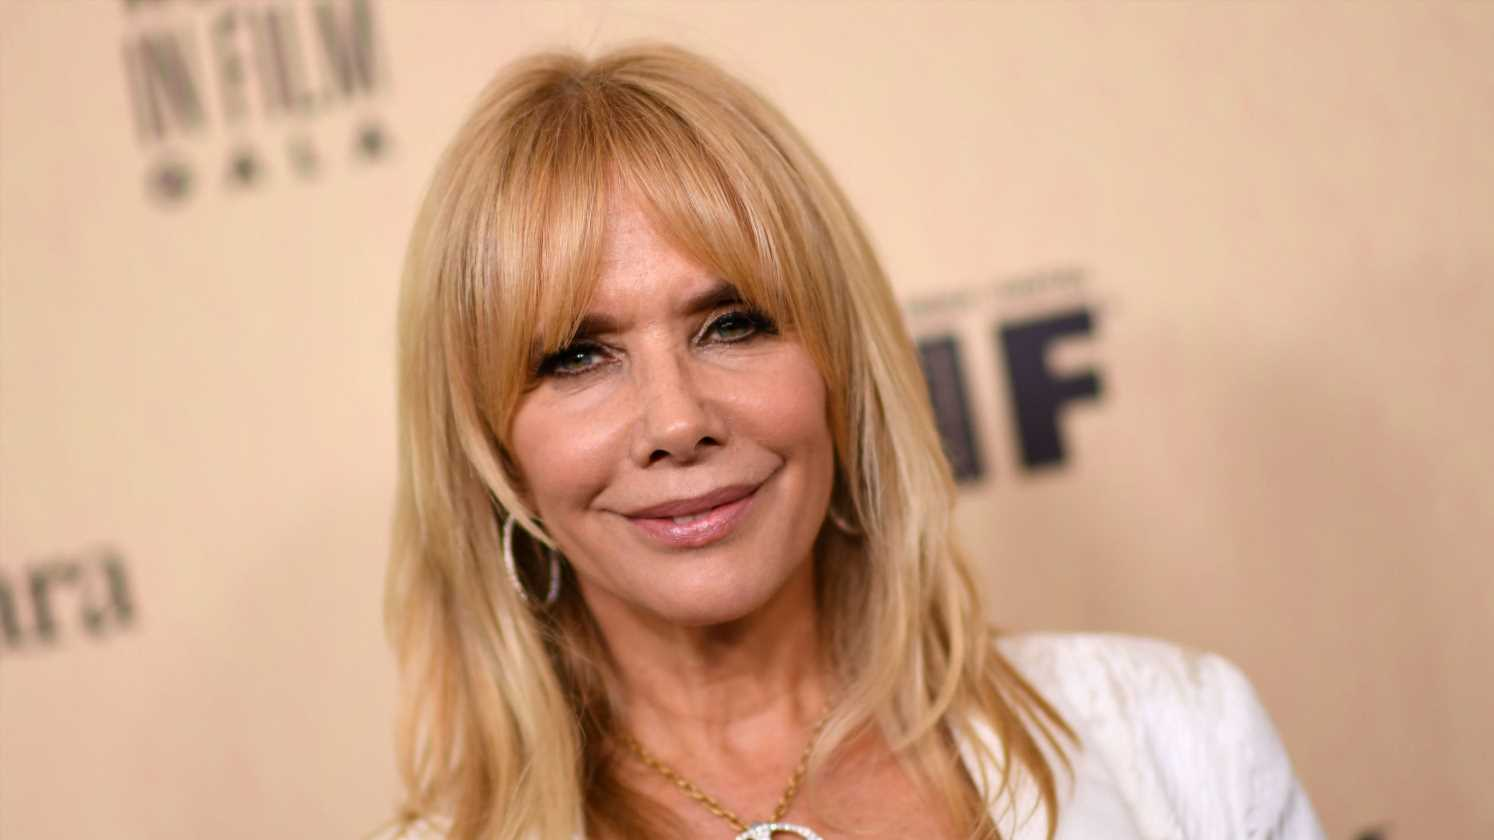 Rosanna Arquette slammed for saying she 'feels so much shame' over being white, privileged